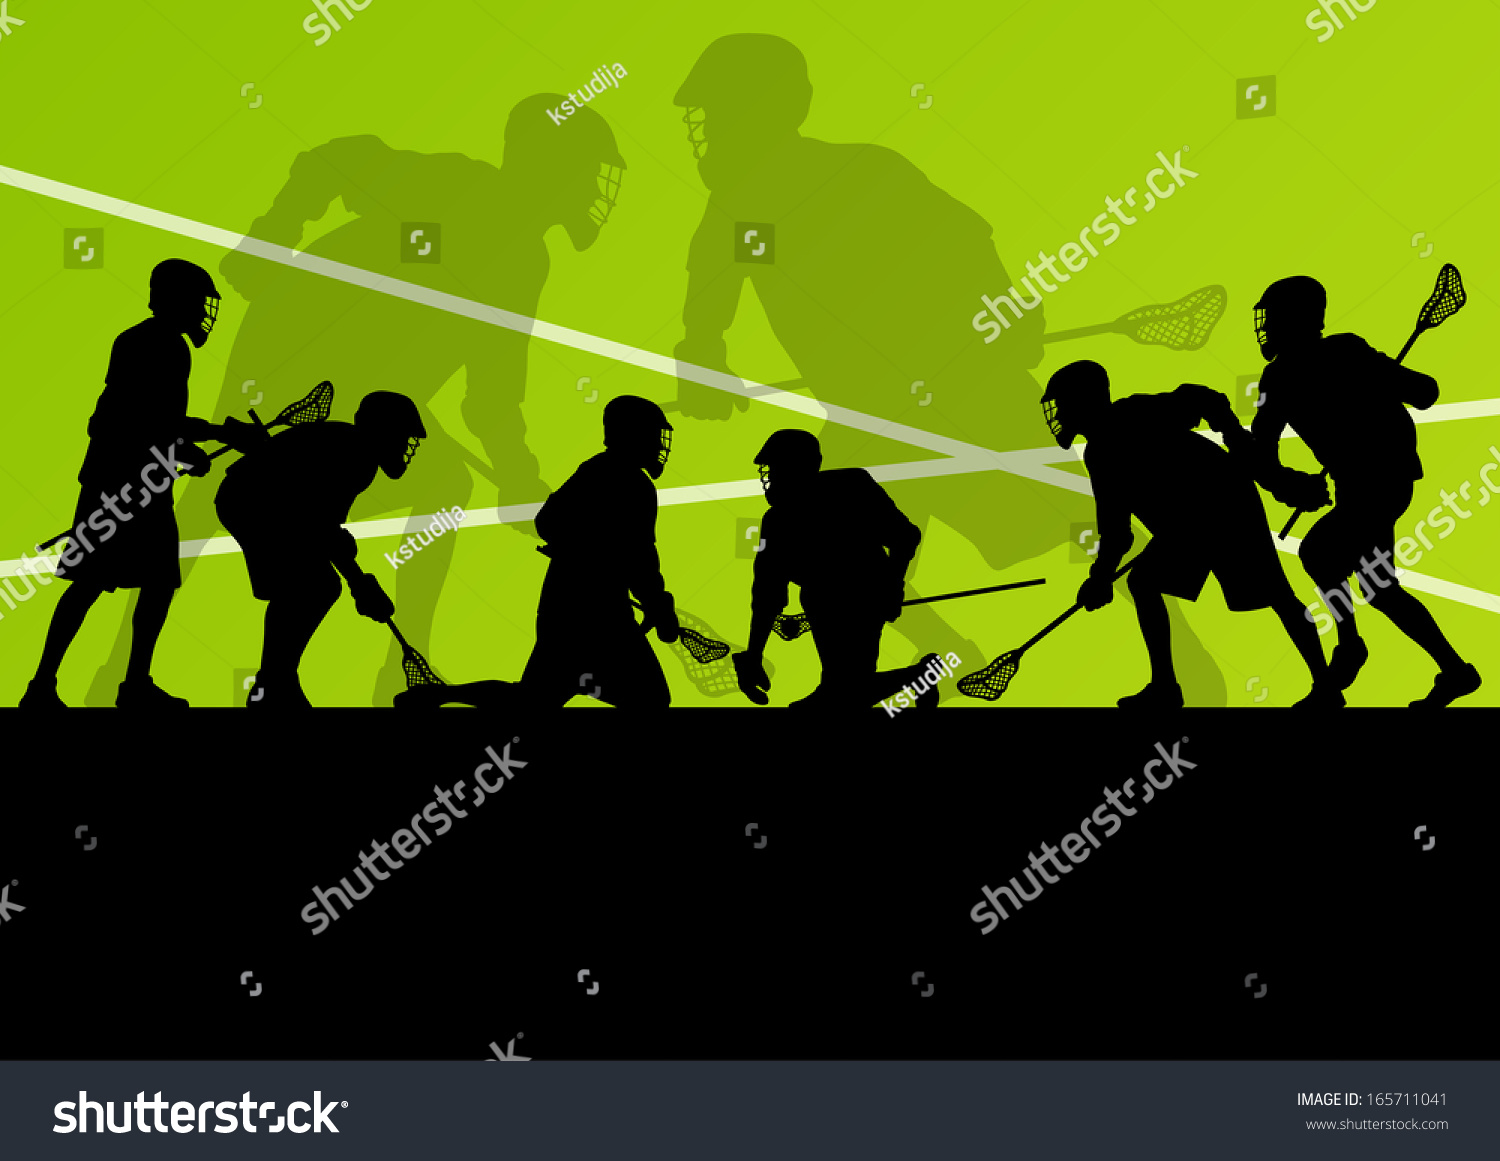 Illustration Abstract Volleyball Player Silhouette: Lacrosse Players Active Sport Silhouettes Vector Abstract